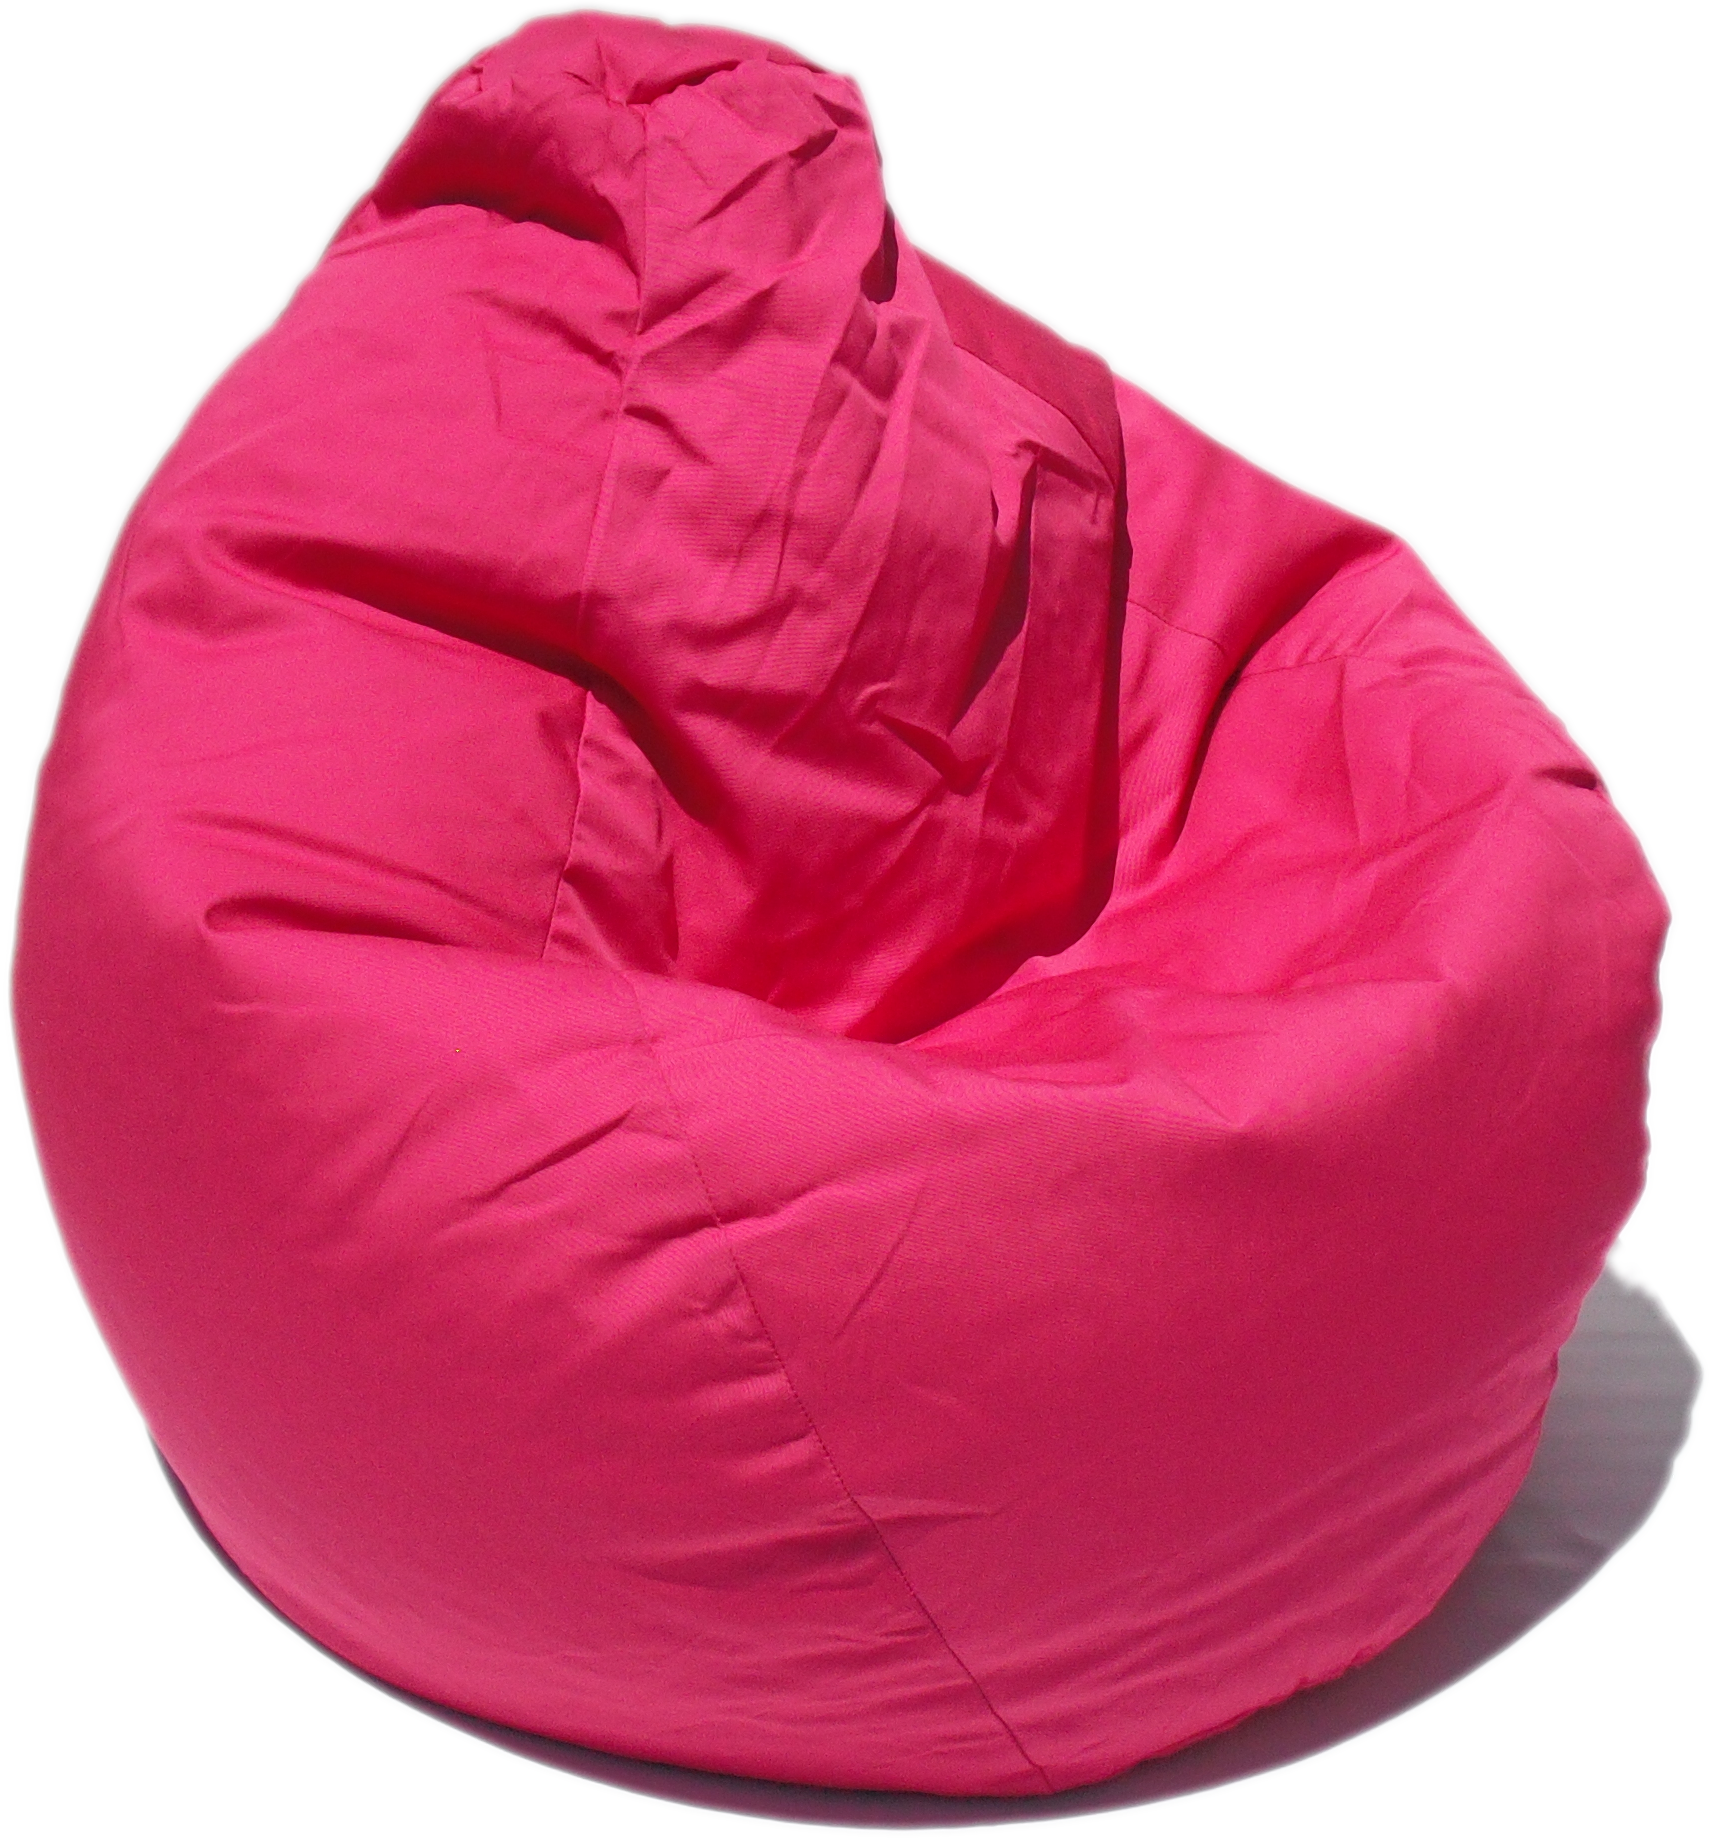 Poly Cotton Pink Bean Bag Chair